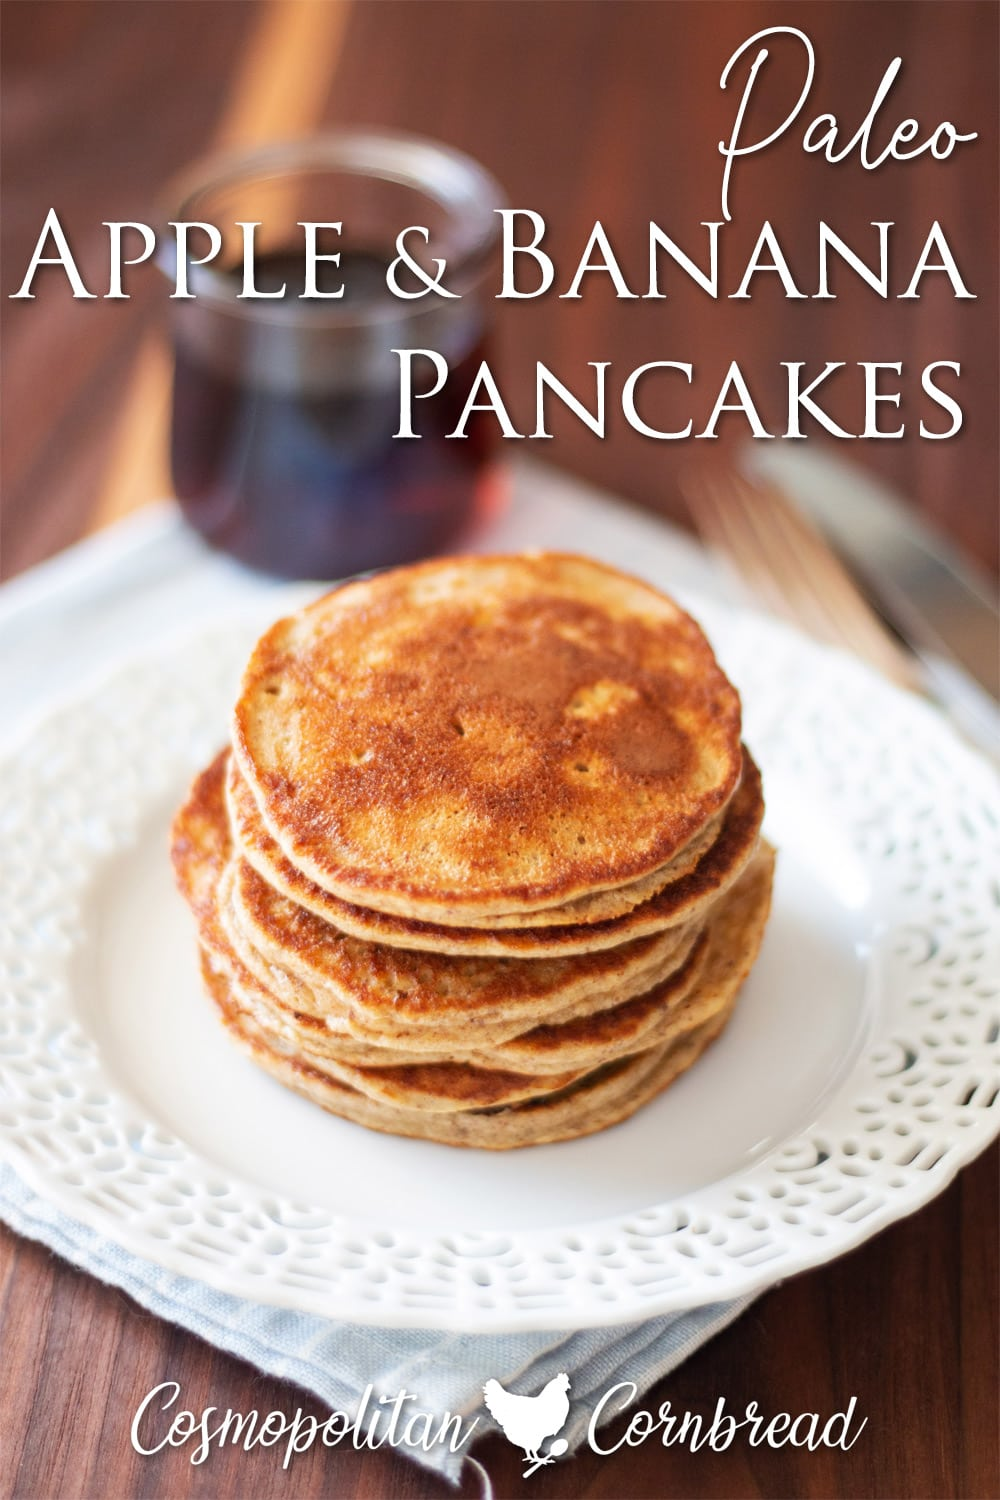 These tasty Apple Banana Pancakes with almond butter are a great way to start any morning. You'll love how easy they are to make.